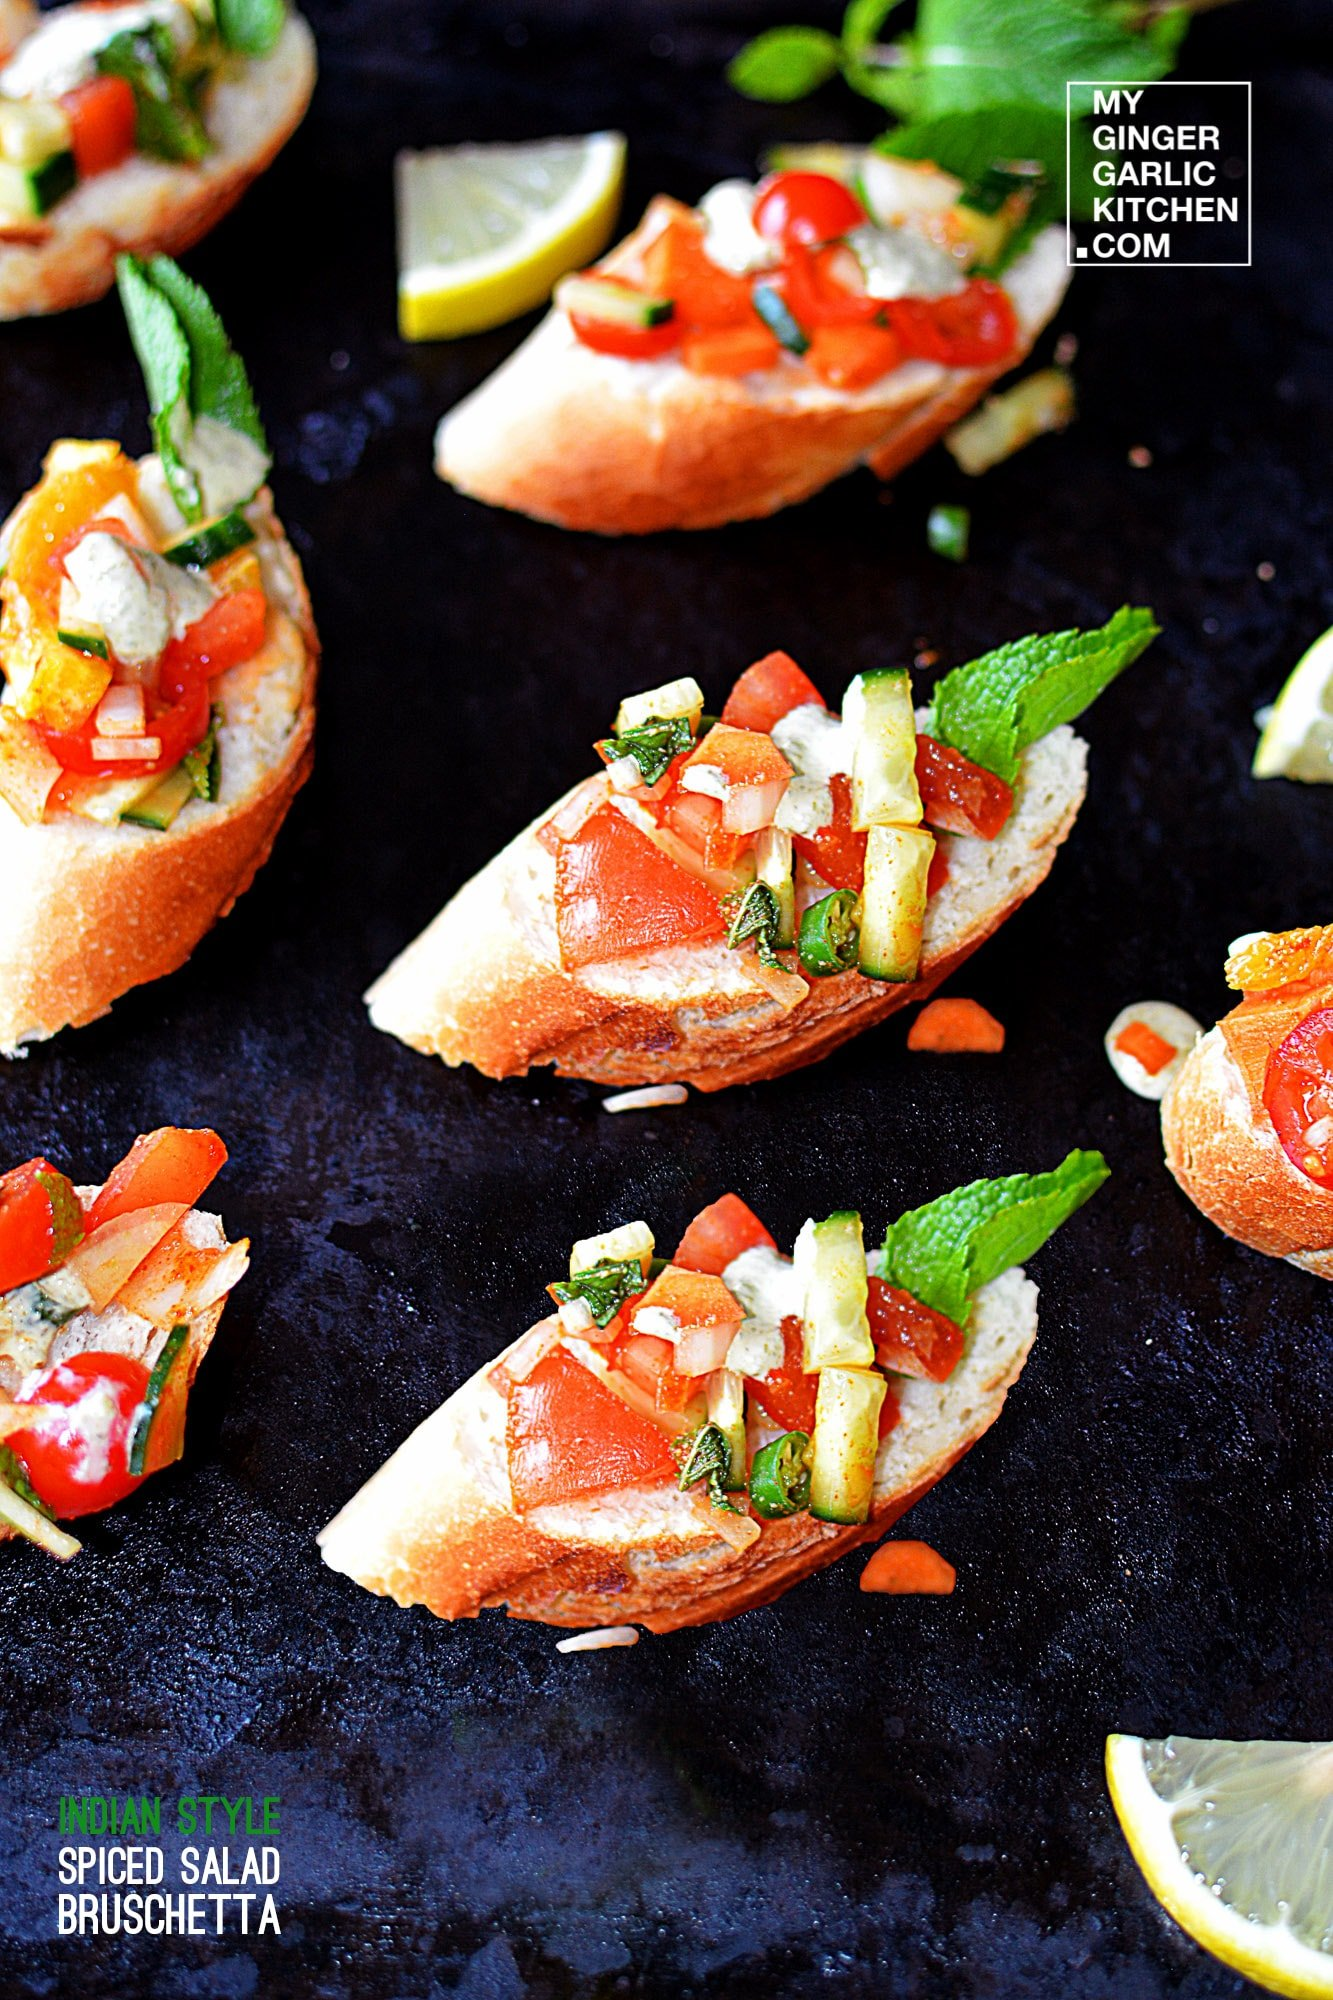 Image of Indian Style Spiced Salad Bruschetta